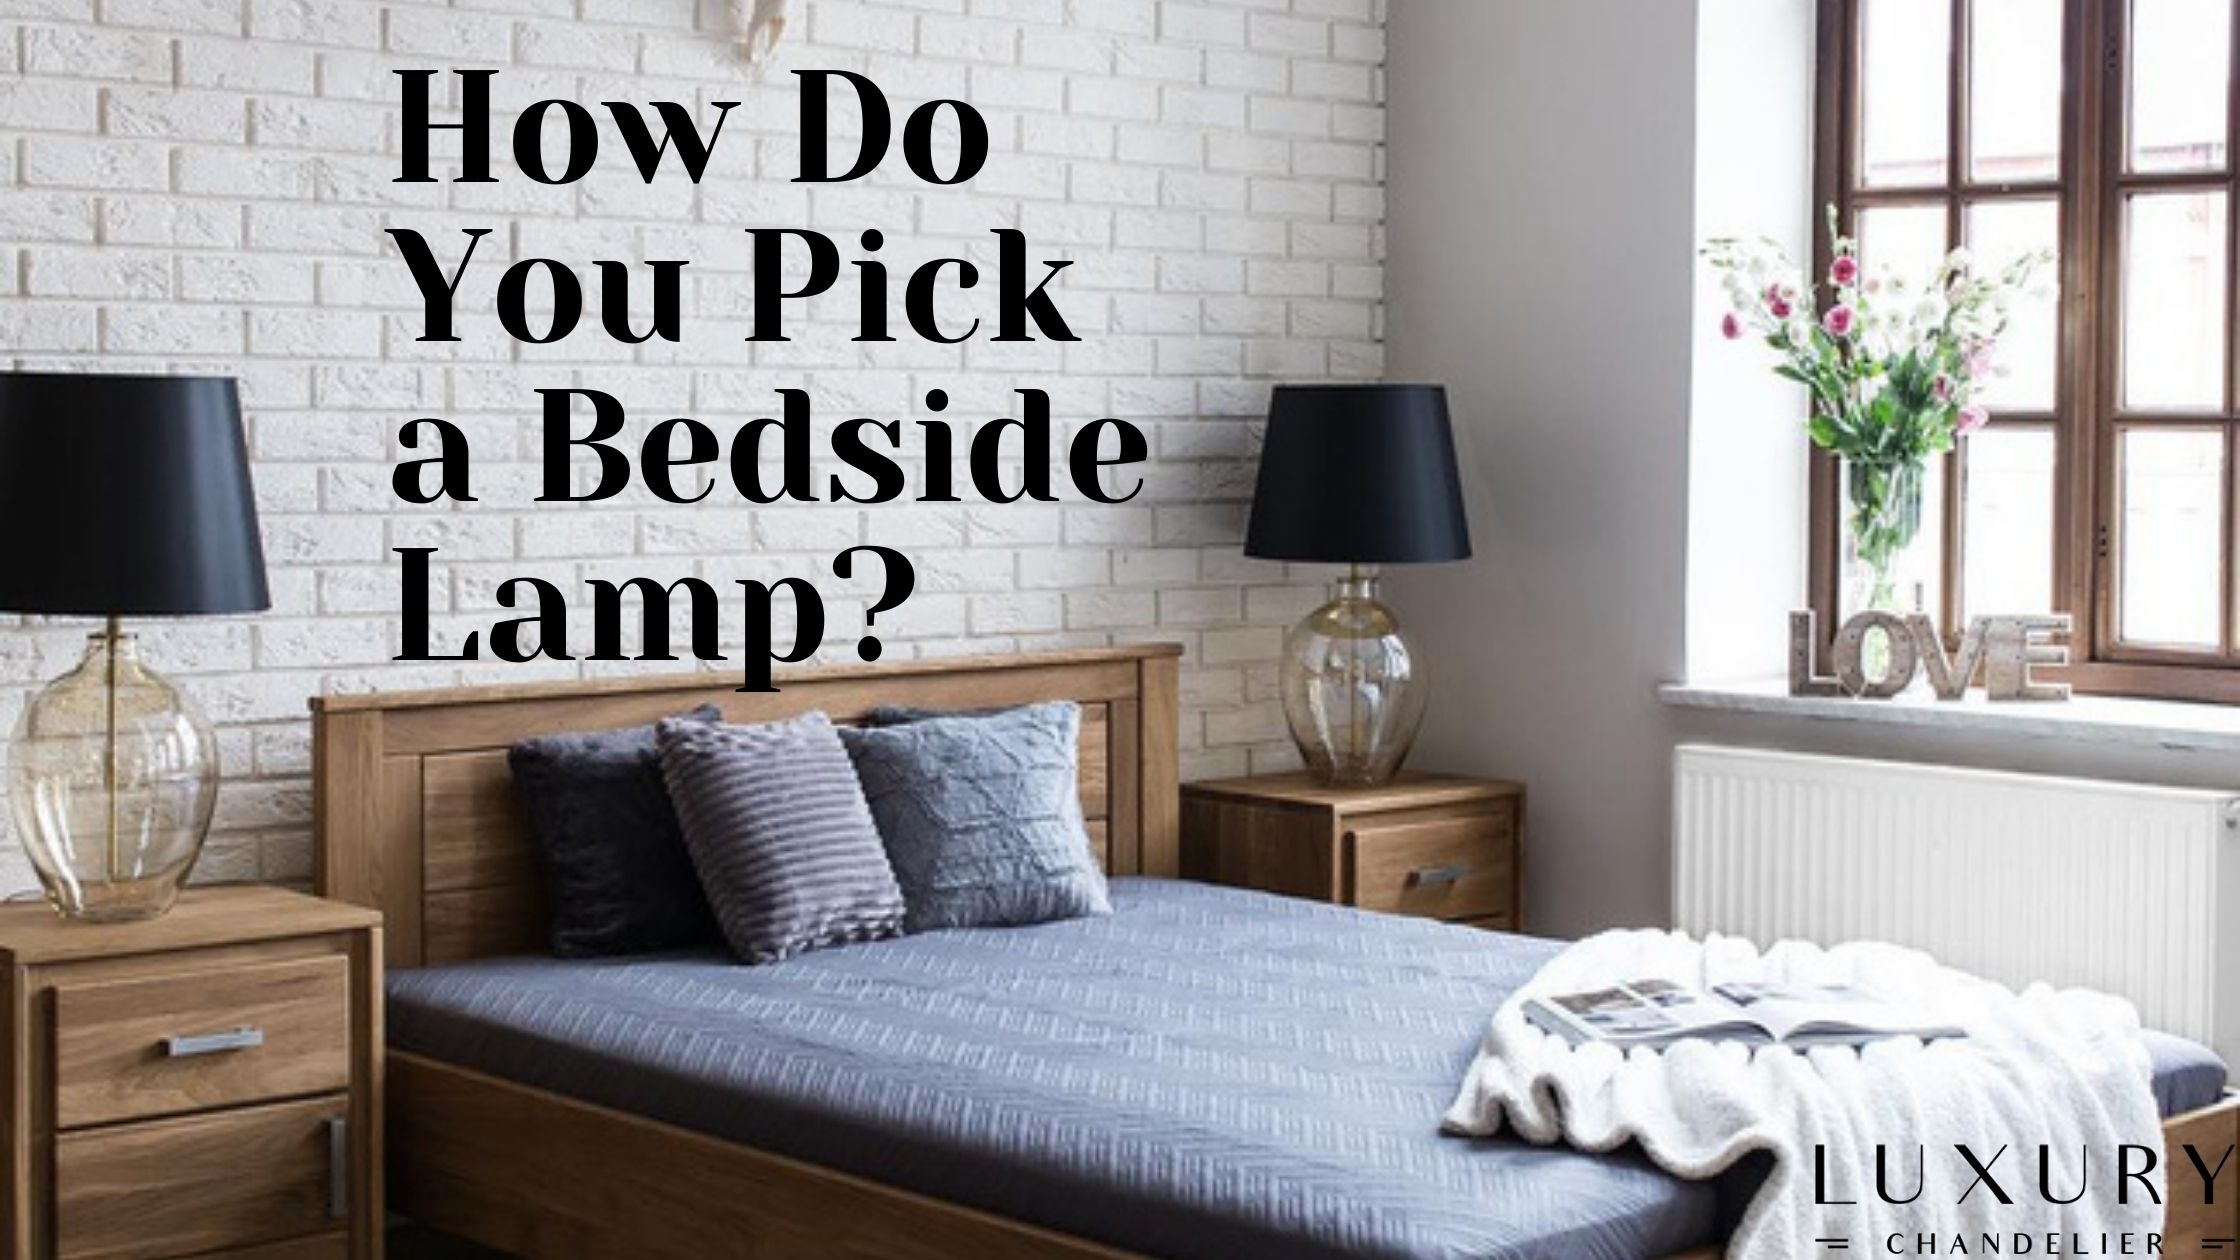 How Do You Pick a Bedside Lamp?